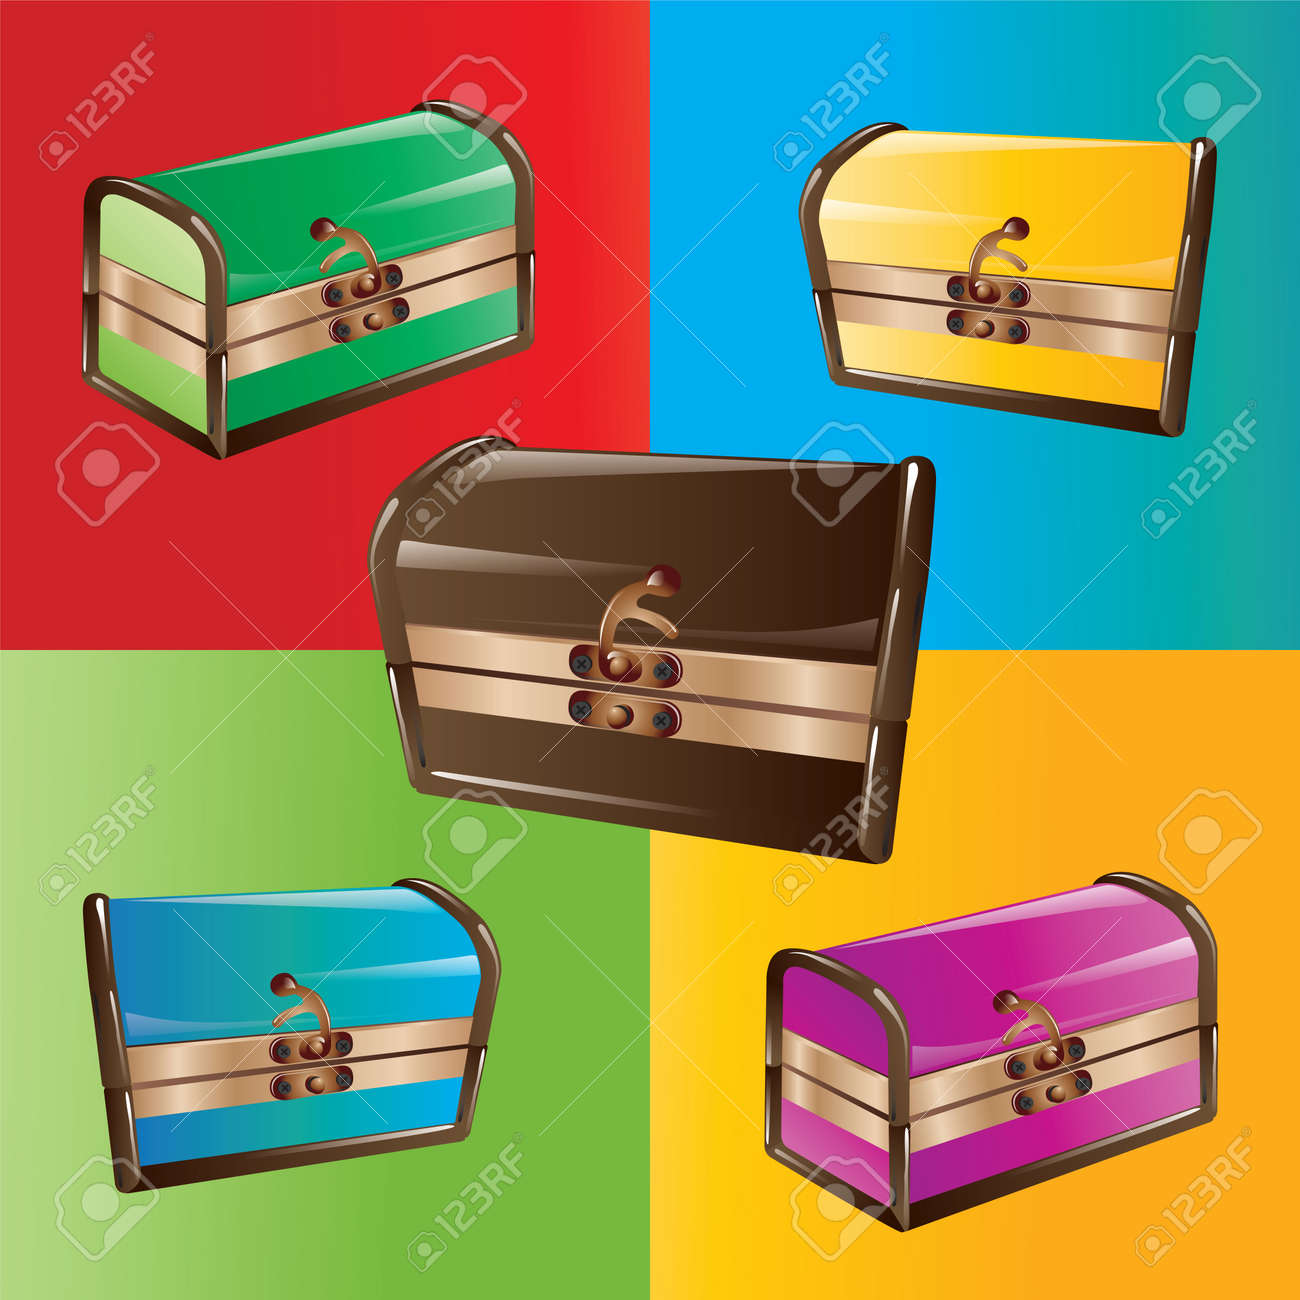 Closed colorful chests isolated. Vector, illustration. Stock Vector - 45222041